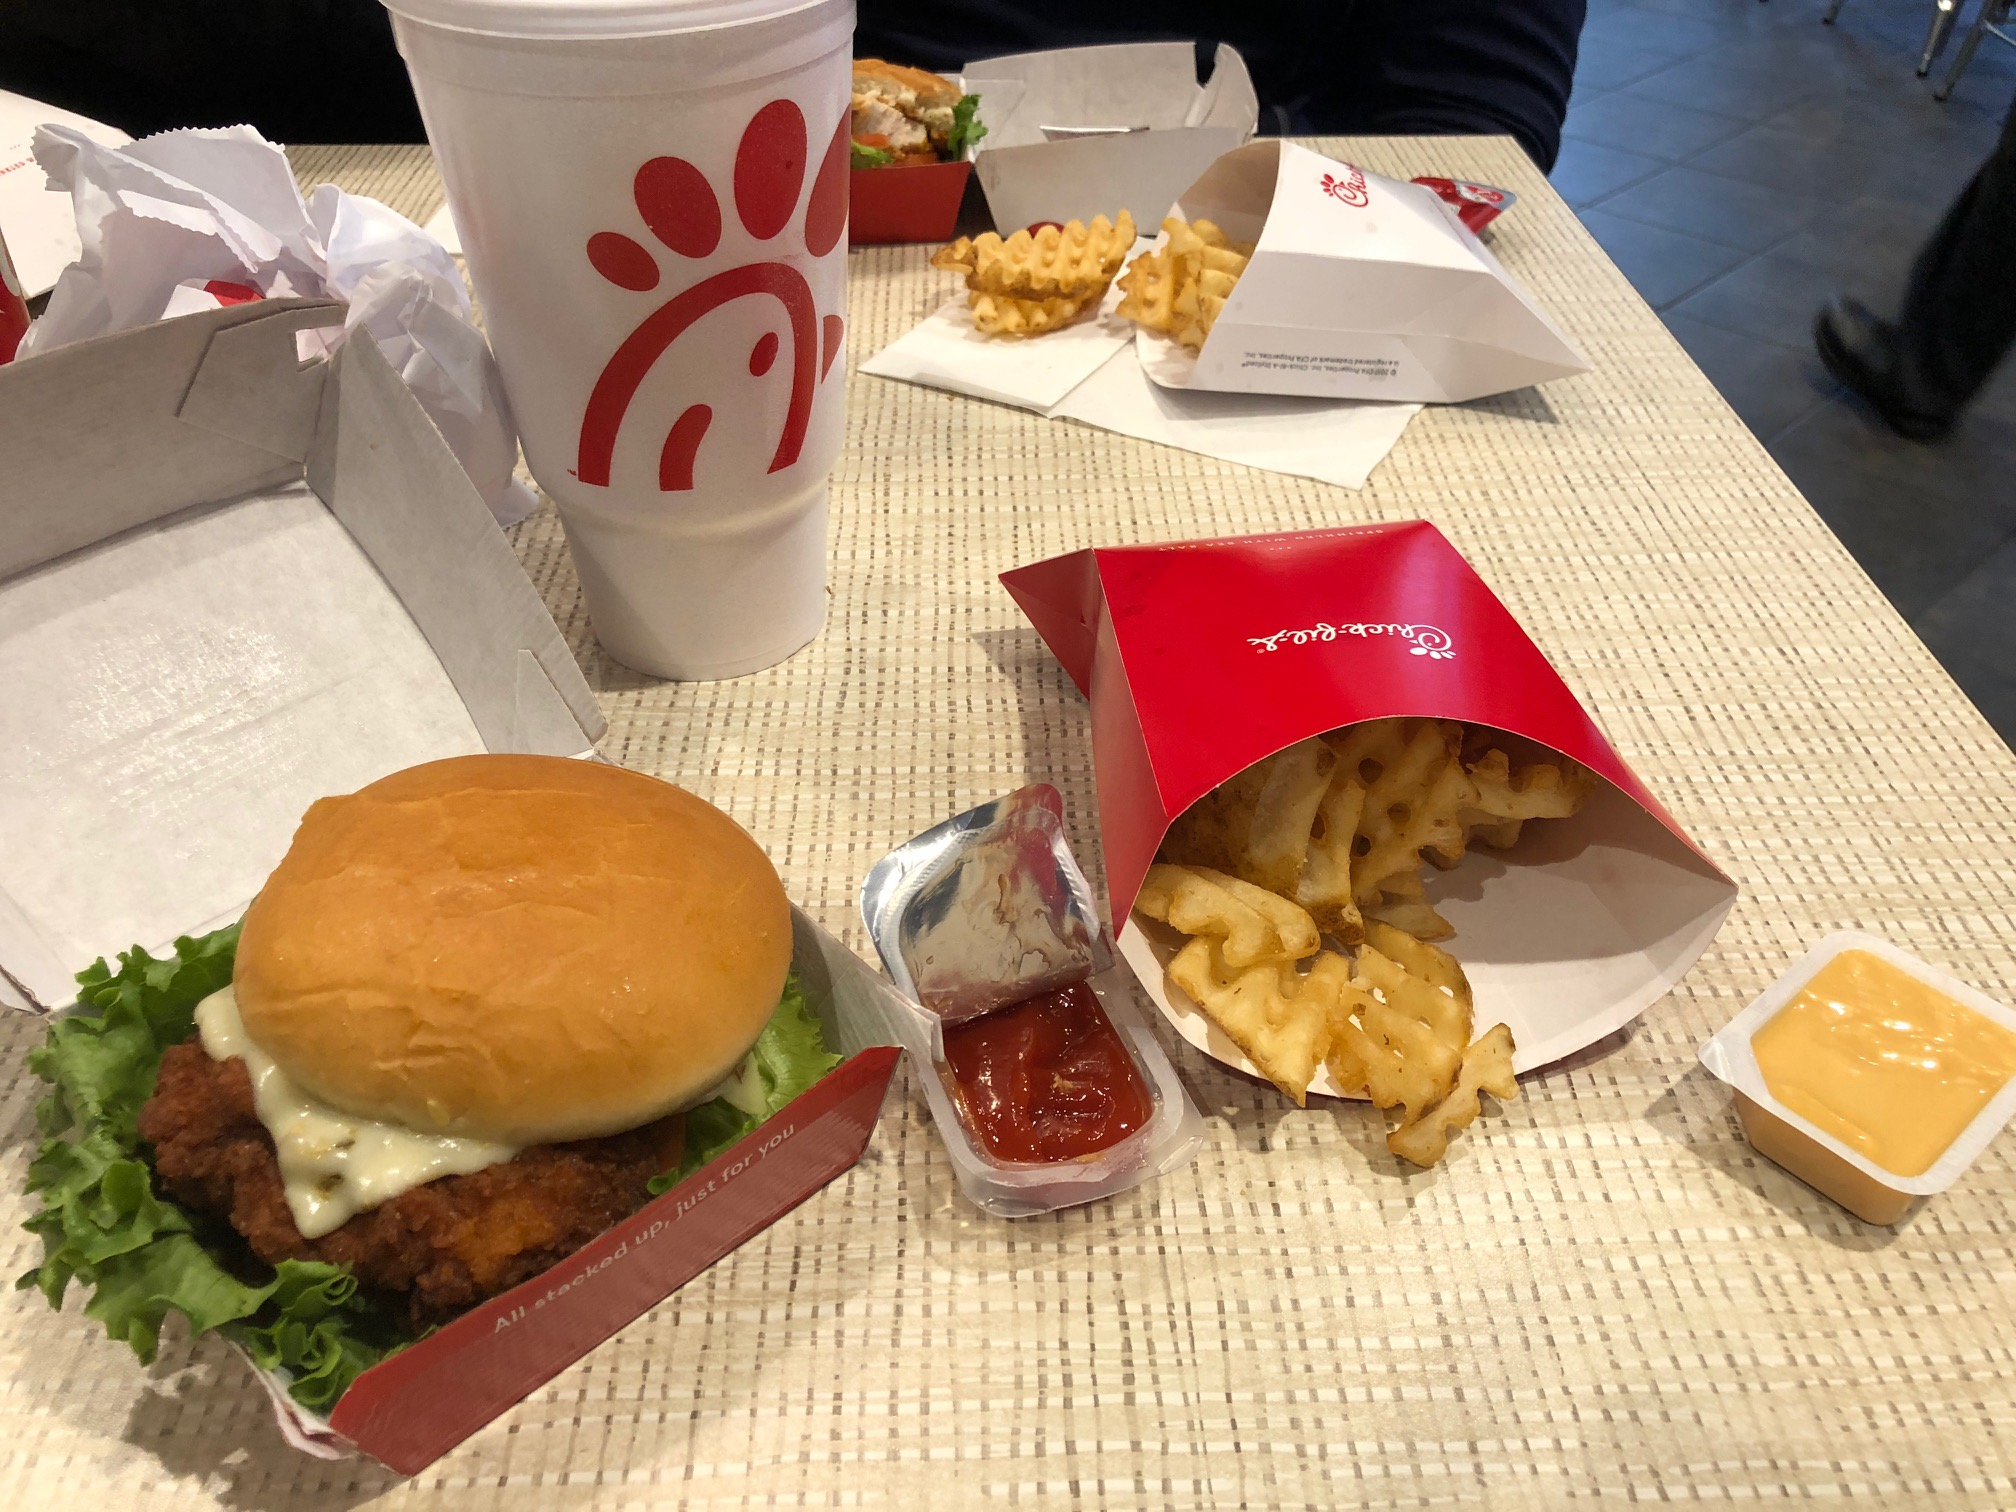 photo regarding Chick Fil a Menu Printable titled Chick fil a menu combo foods : Simplest Sale